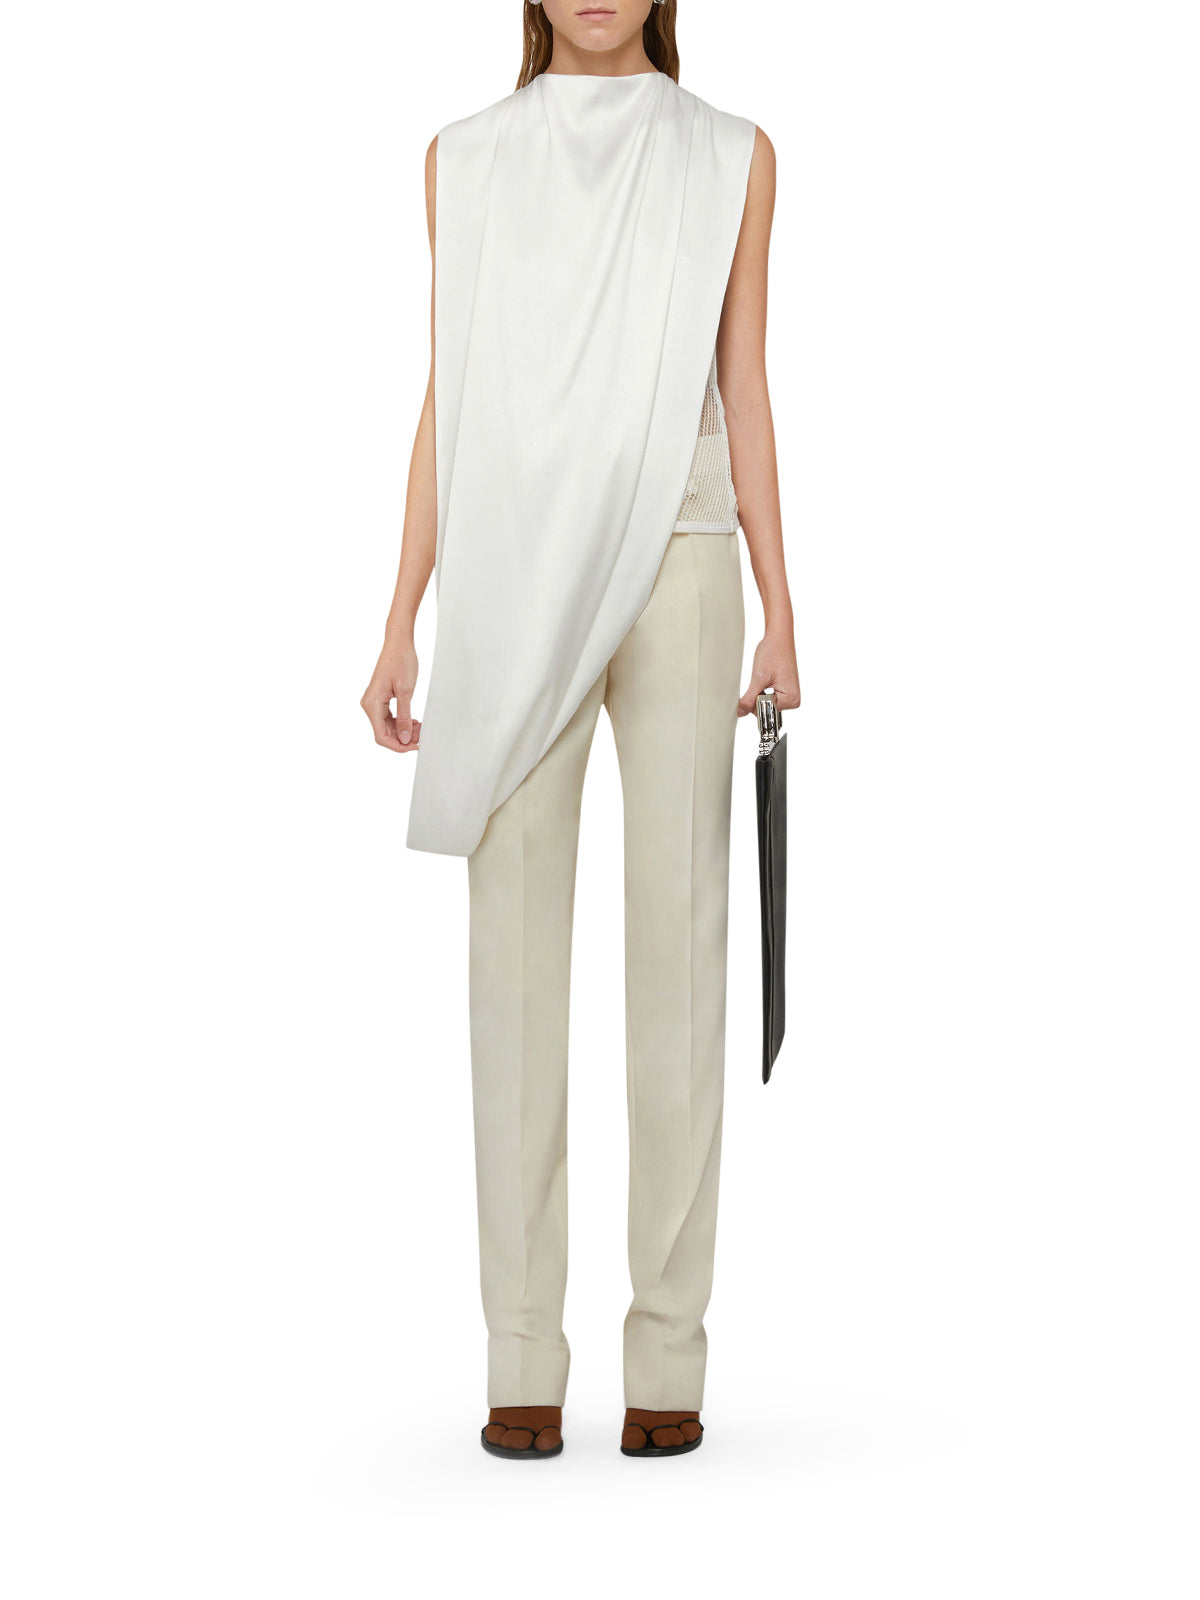 Givenchy Tops TOP ASYMMETRICAL DRAPE WITH JEWEL RING